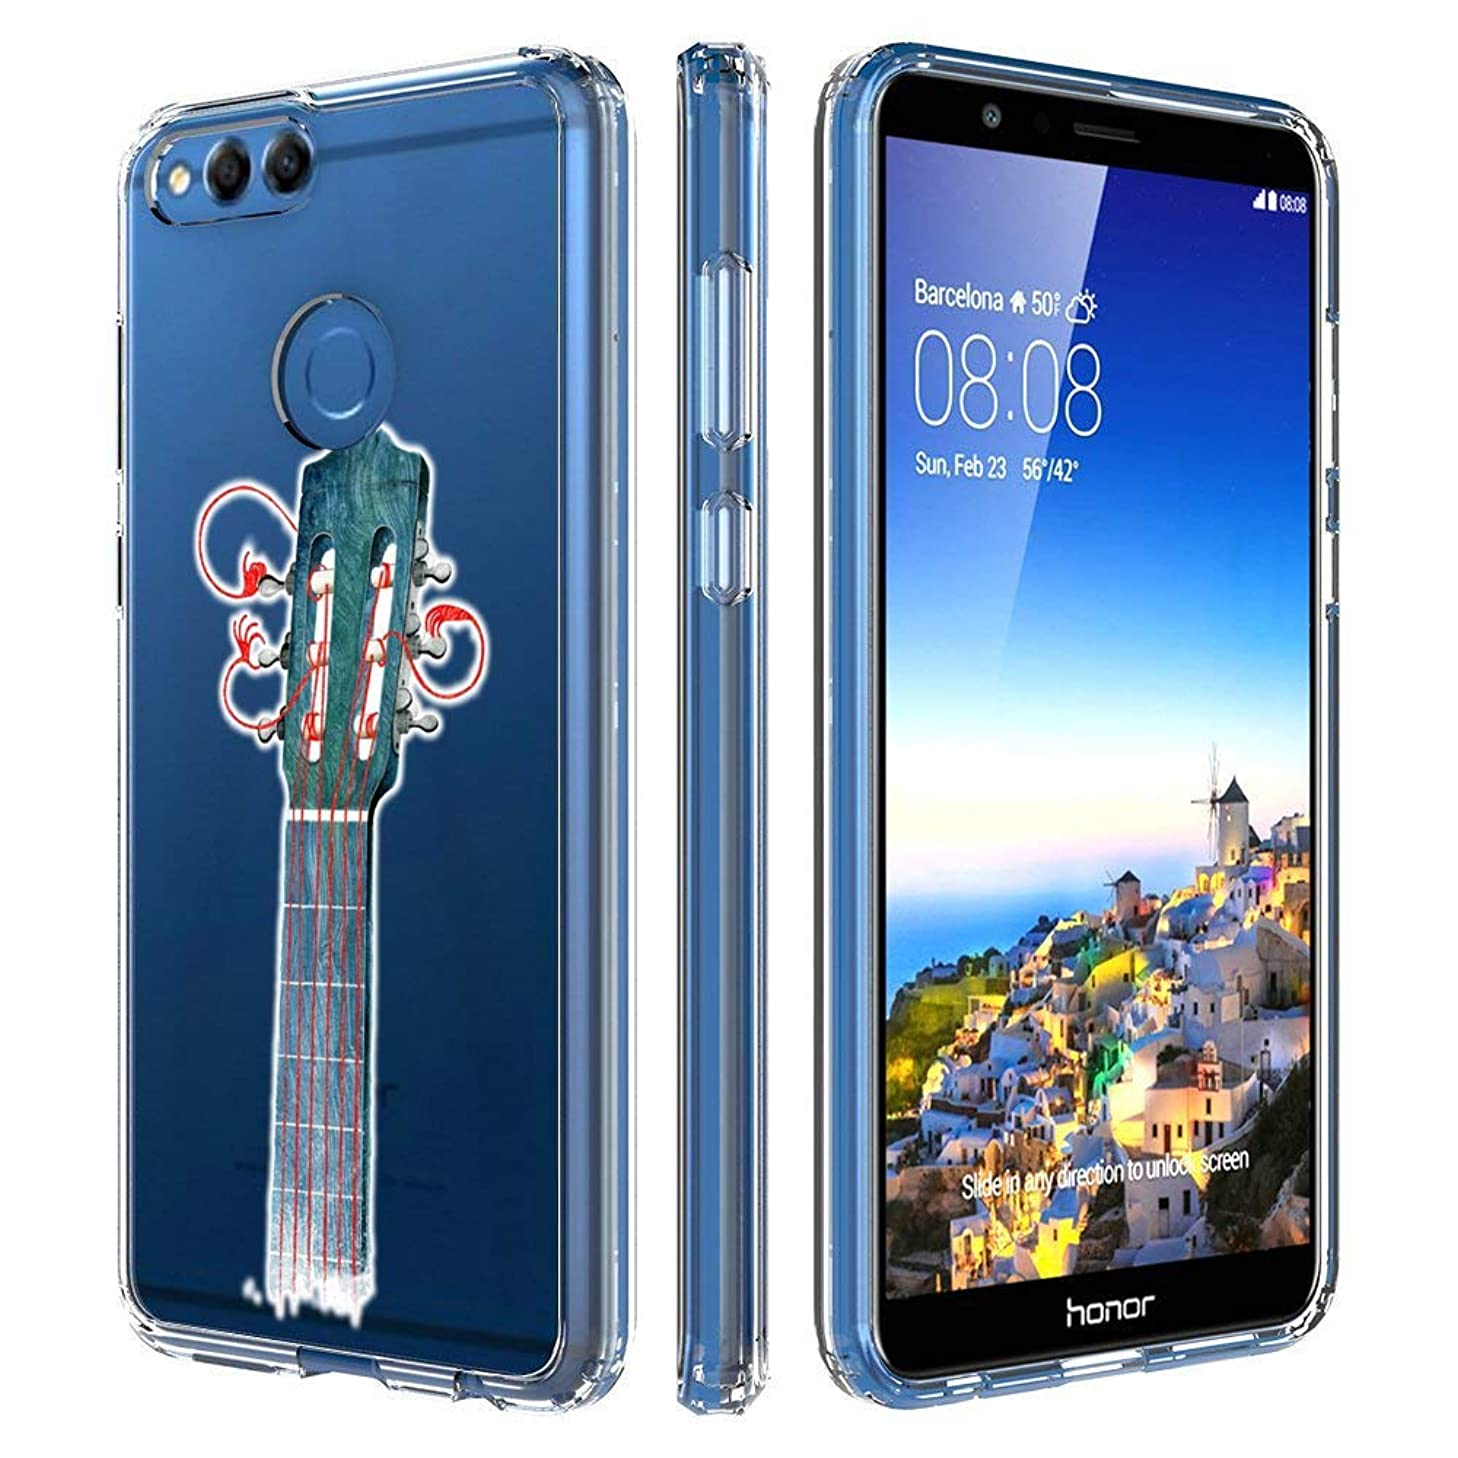 Clear Phone Case Compatible Huawei Honor 7X Customized Guitar String Design by MERVELLE TPU Clear Shock-Proof Protective Case [Ultra Slim, Anti-Slippery]